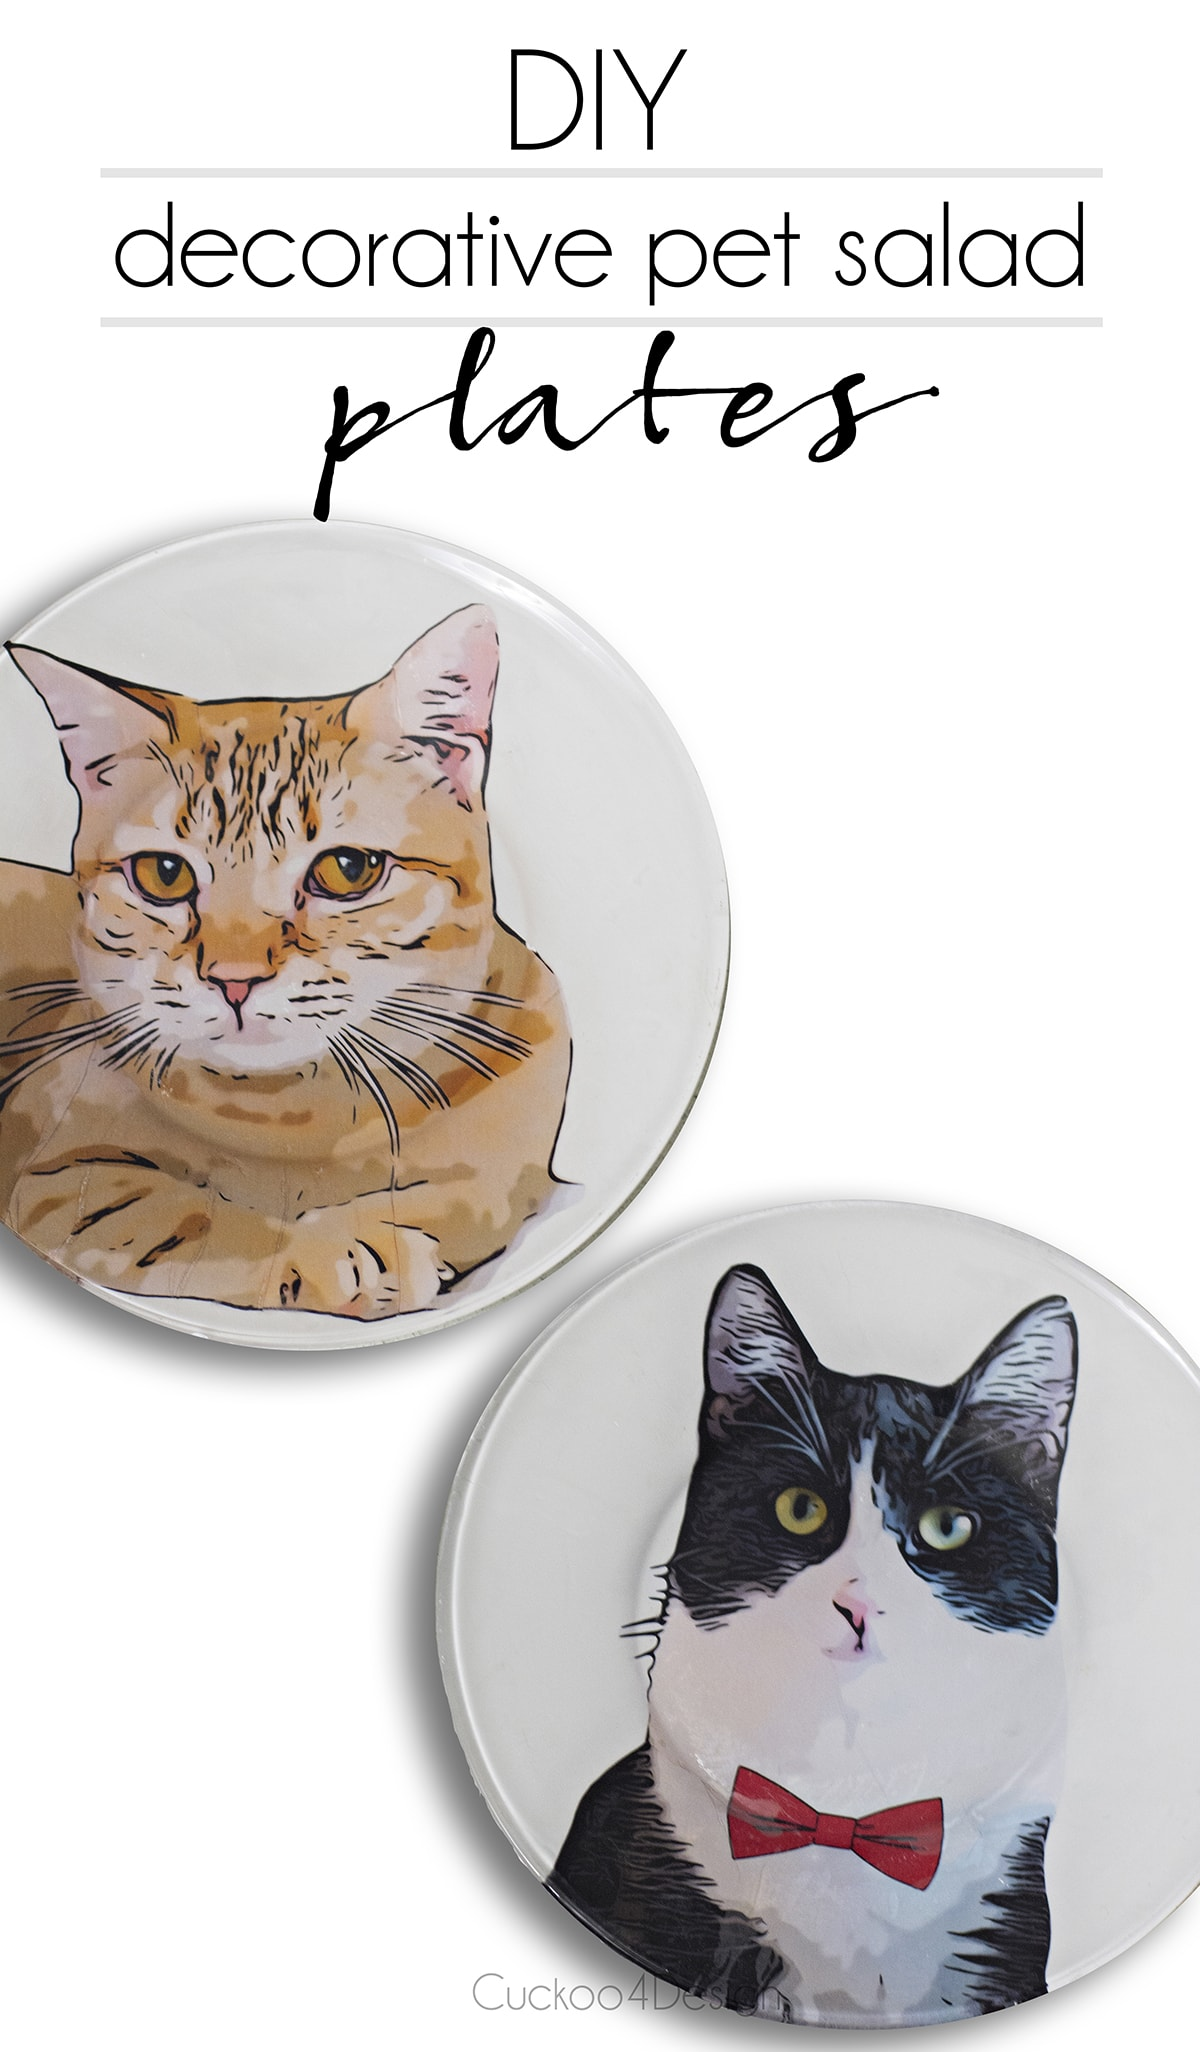 DIY decorative pet salad plates